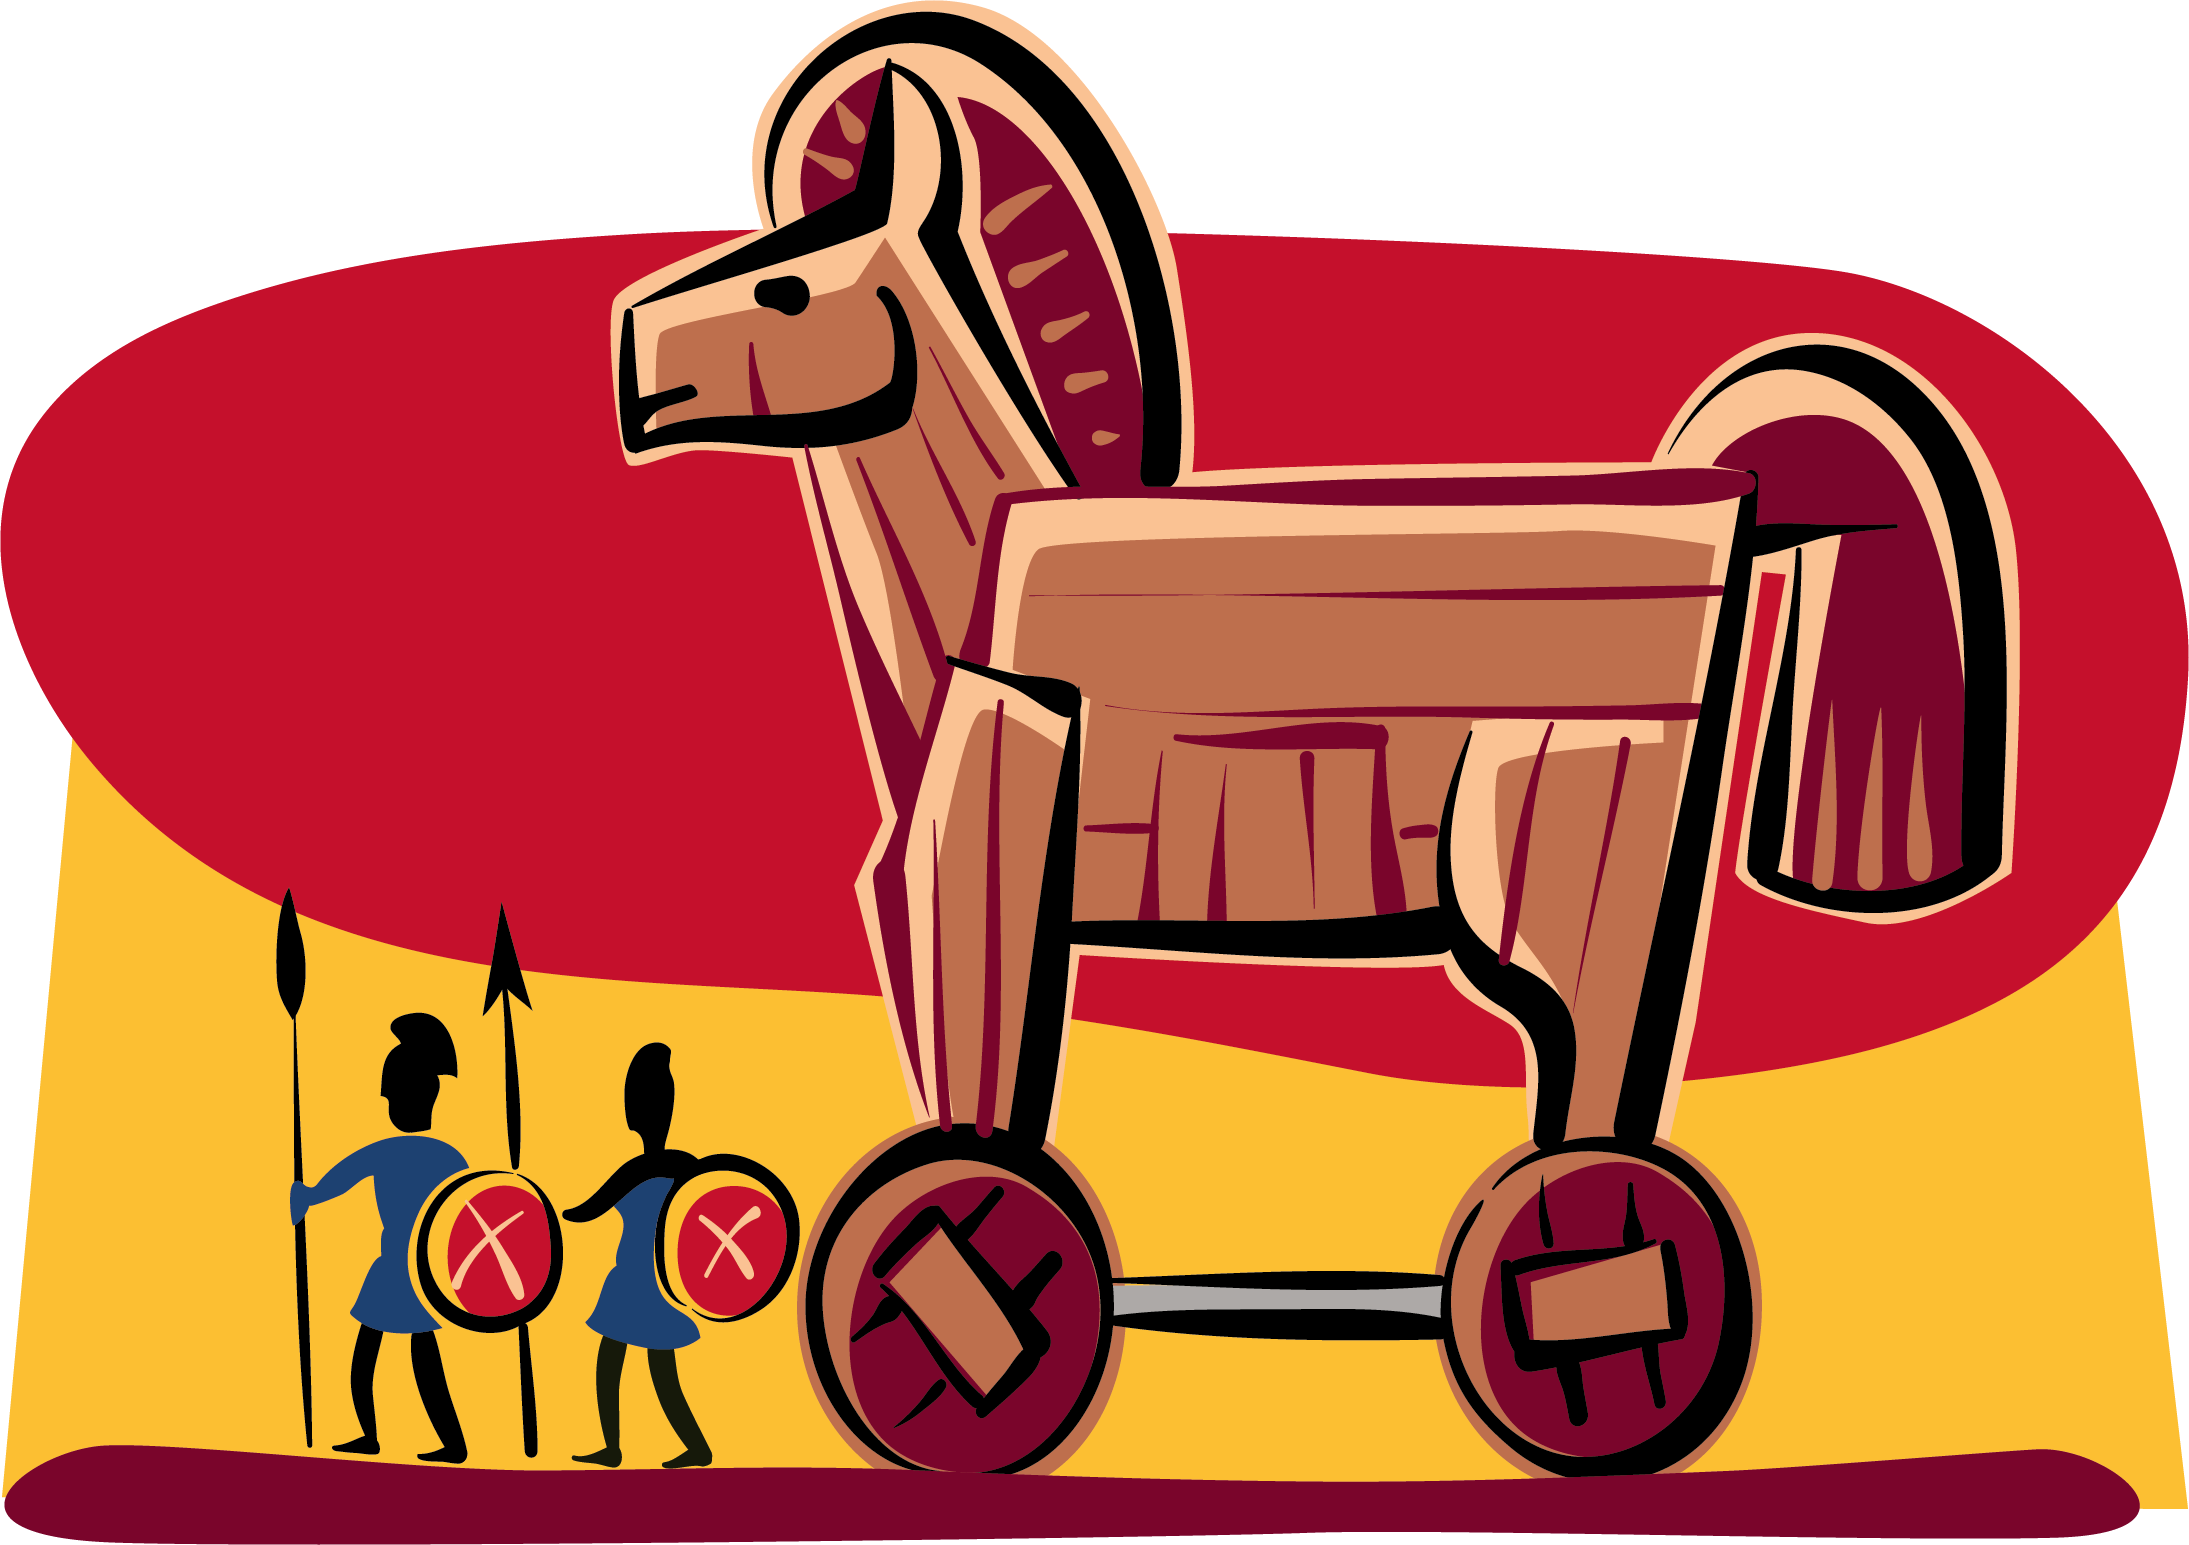 2189x1545 Collection Of Trojan Horse Clipart High Quality, Free